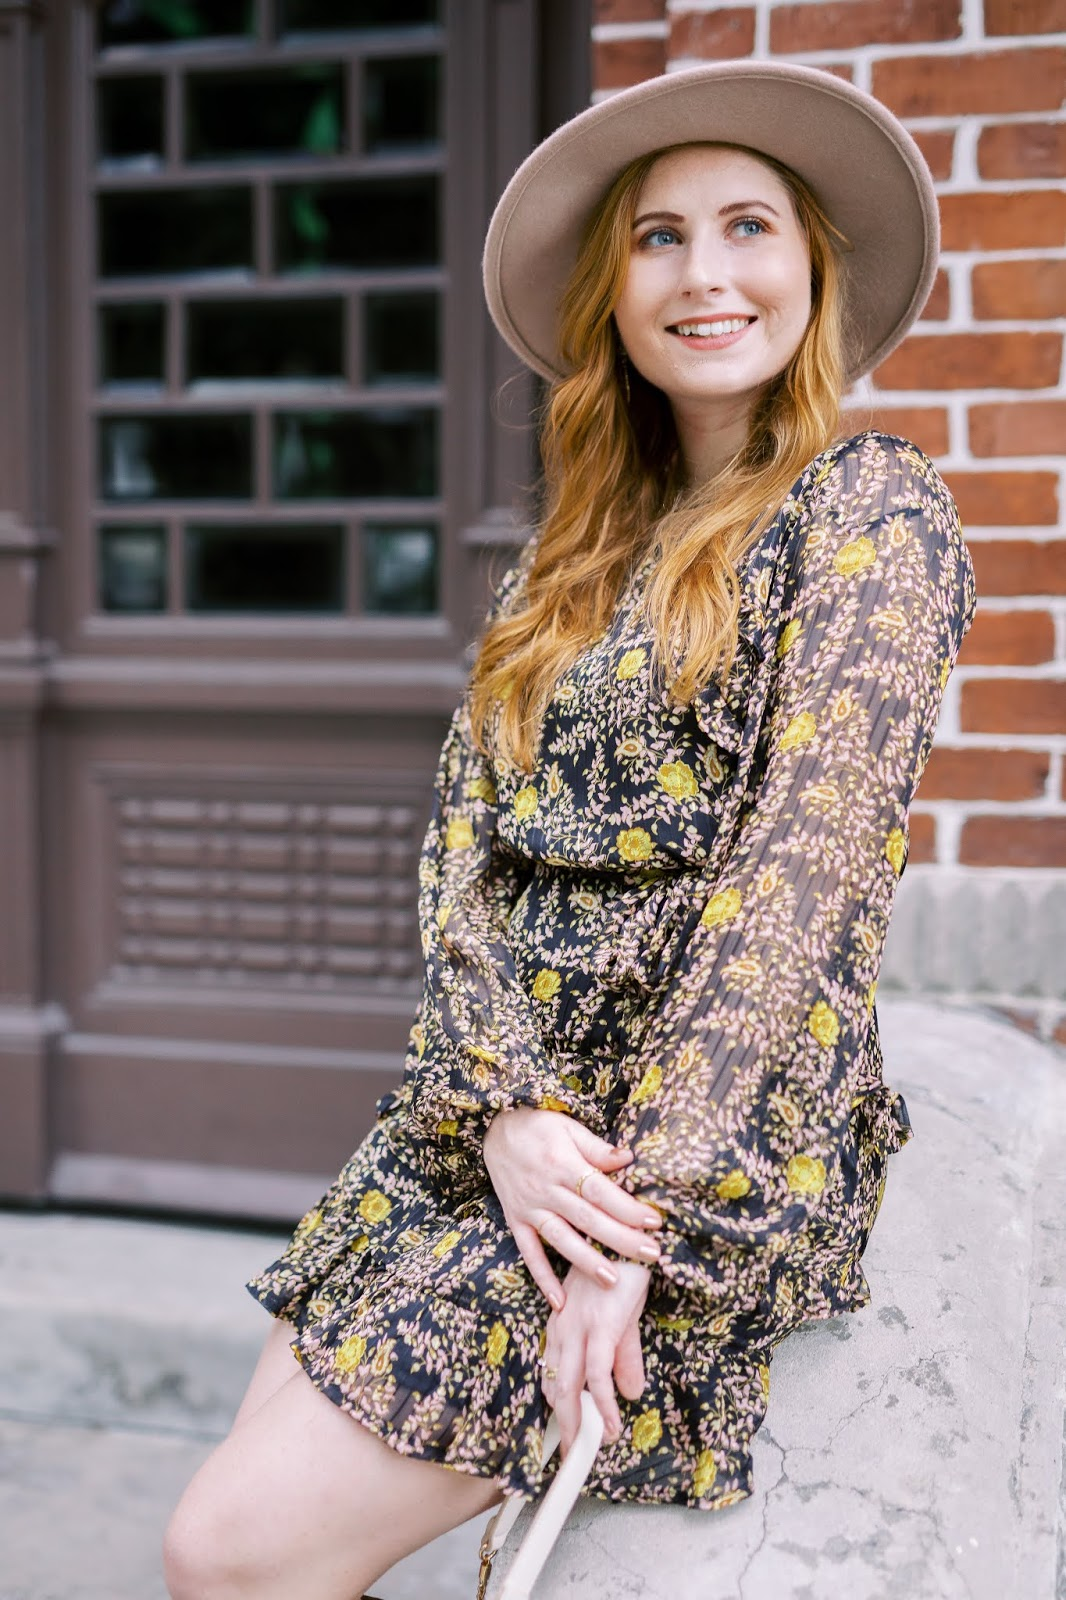 Stylish and Affordable Thanksgiving Outfit Ideas: 20 Dress Options To Wear on Thanksgiving | Amanda Burrows of Affordable by Amanda wearing a black, yellow, and sheer ruffle dress. She is smiling and wearing a Free People felt hat.